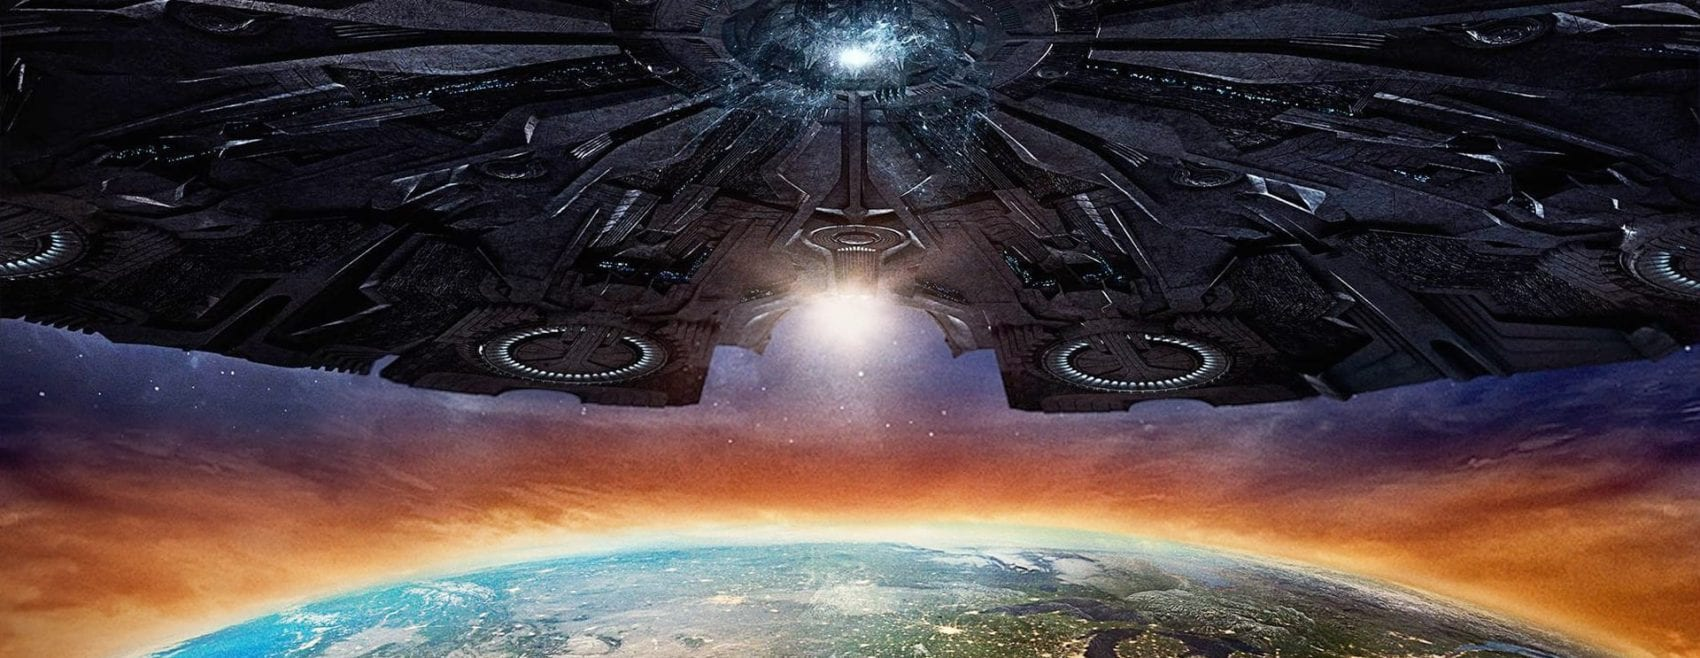 Independence Day Resurgence Review My Geek Actu 1